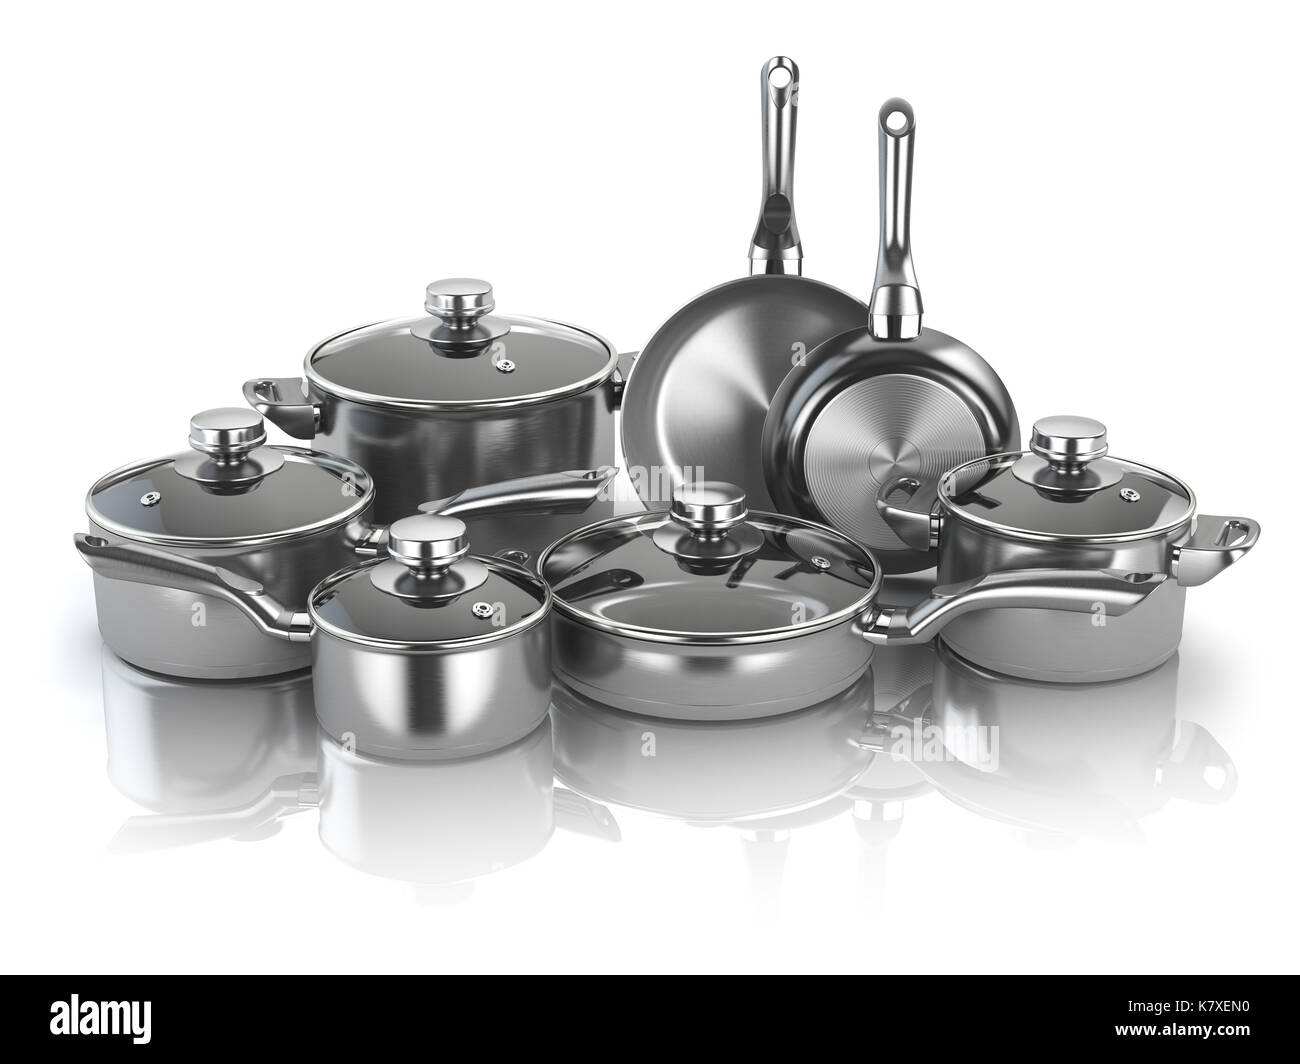 Set Of Cooking Stainless Steel Kitchen Utensils And Cookware. 3d  Illustration